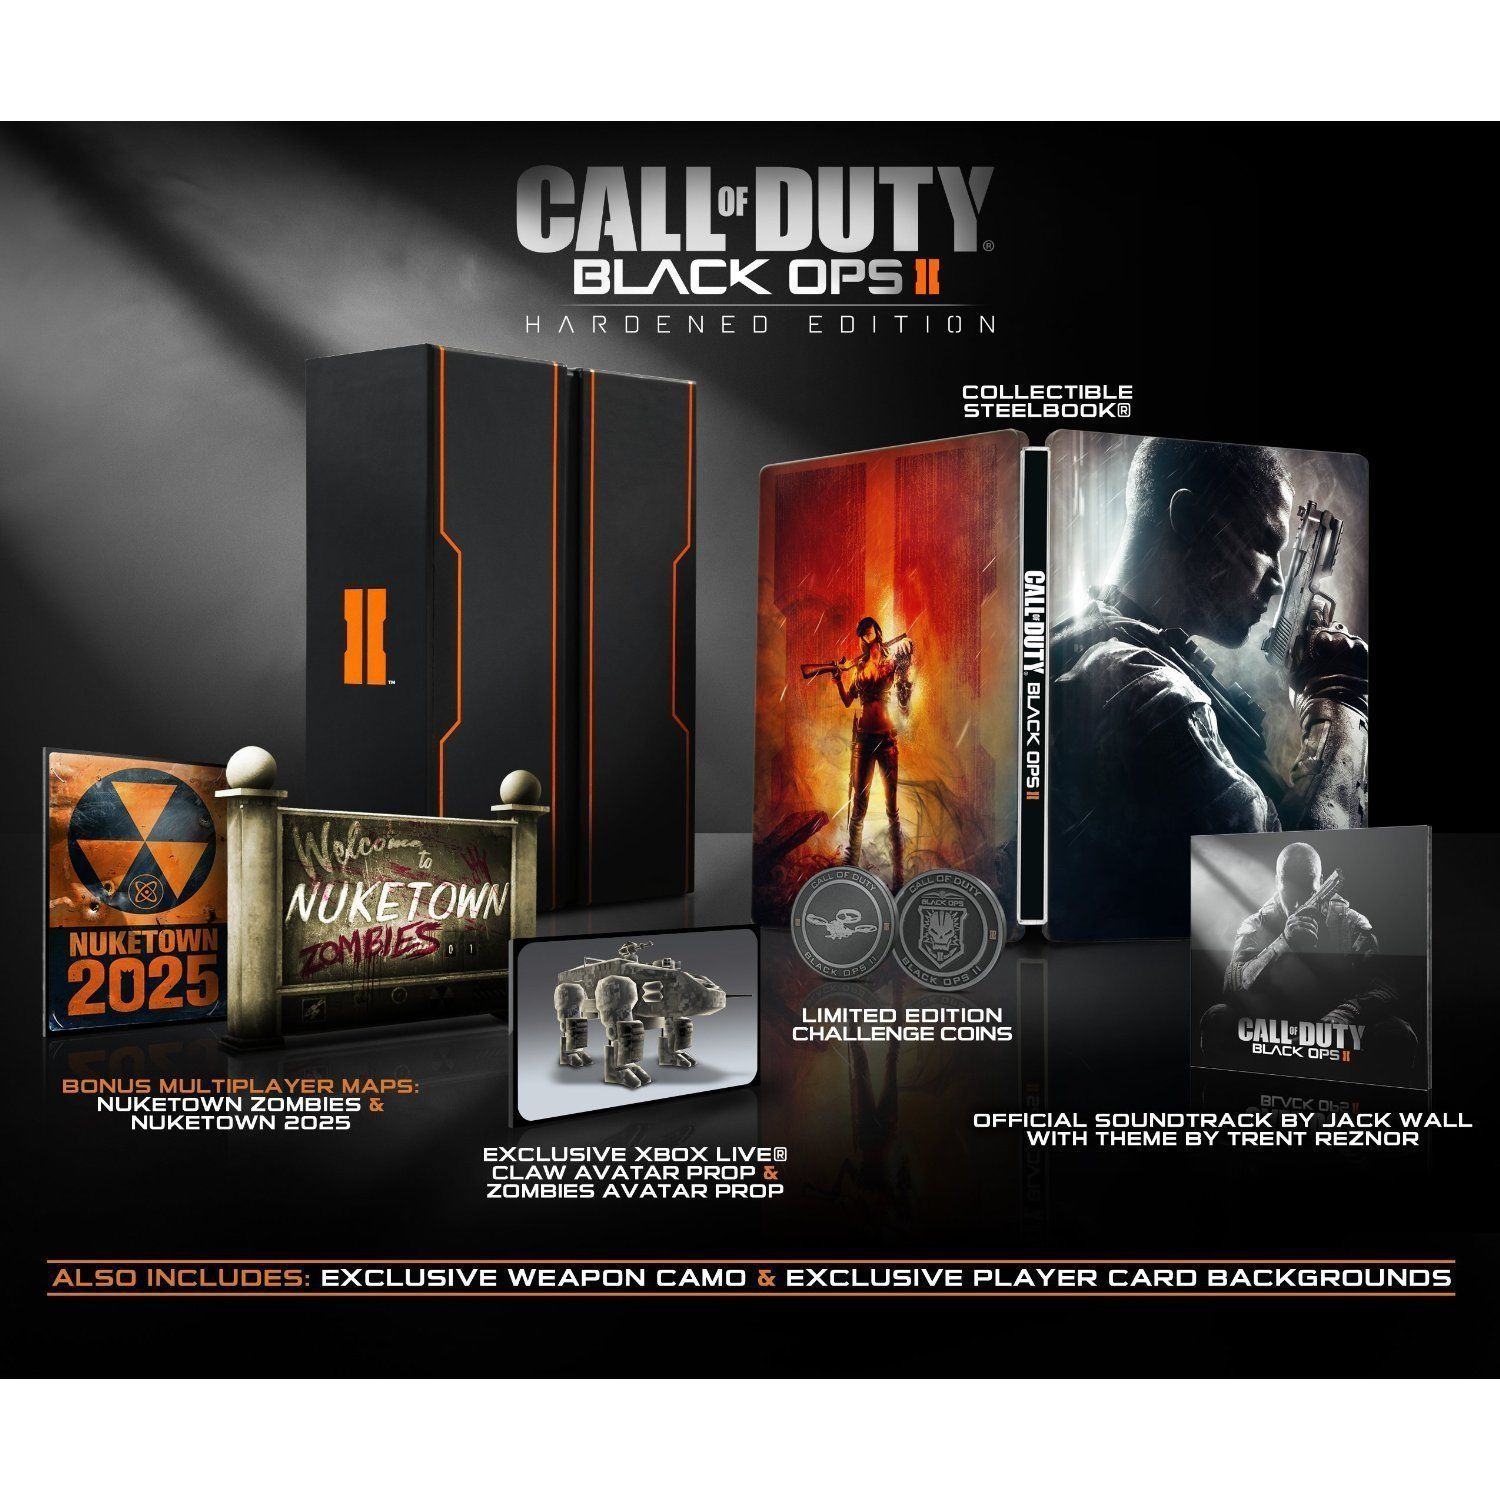 BRAND NEW Call of Duty: Black Ops II 2 Hardened Edition for Xbox 360 image 2